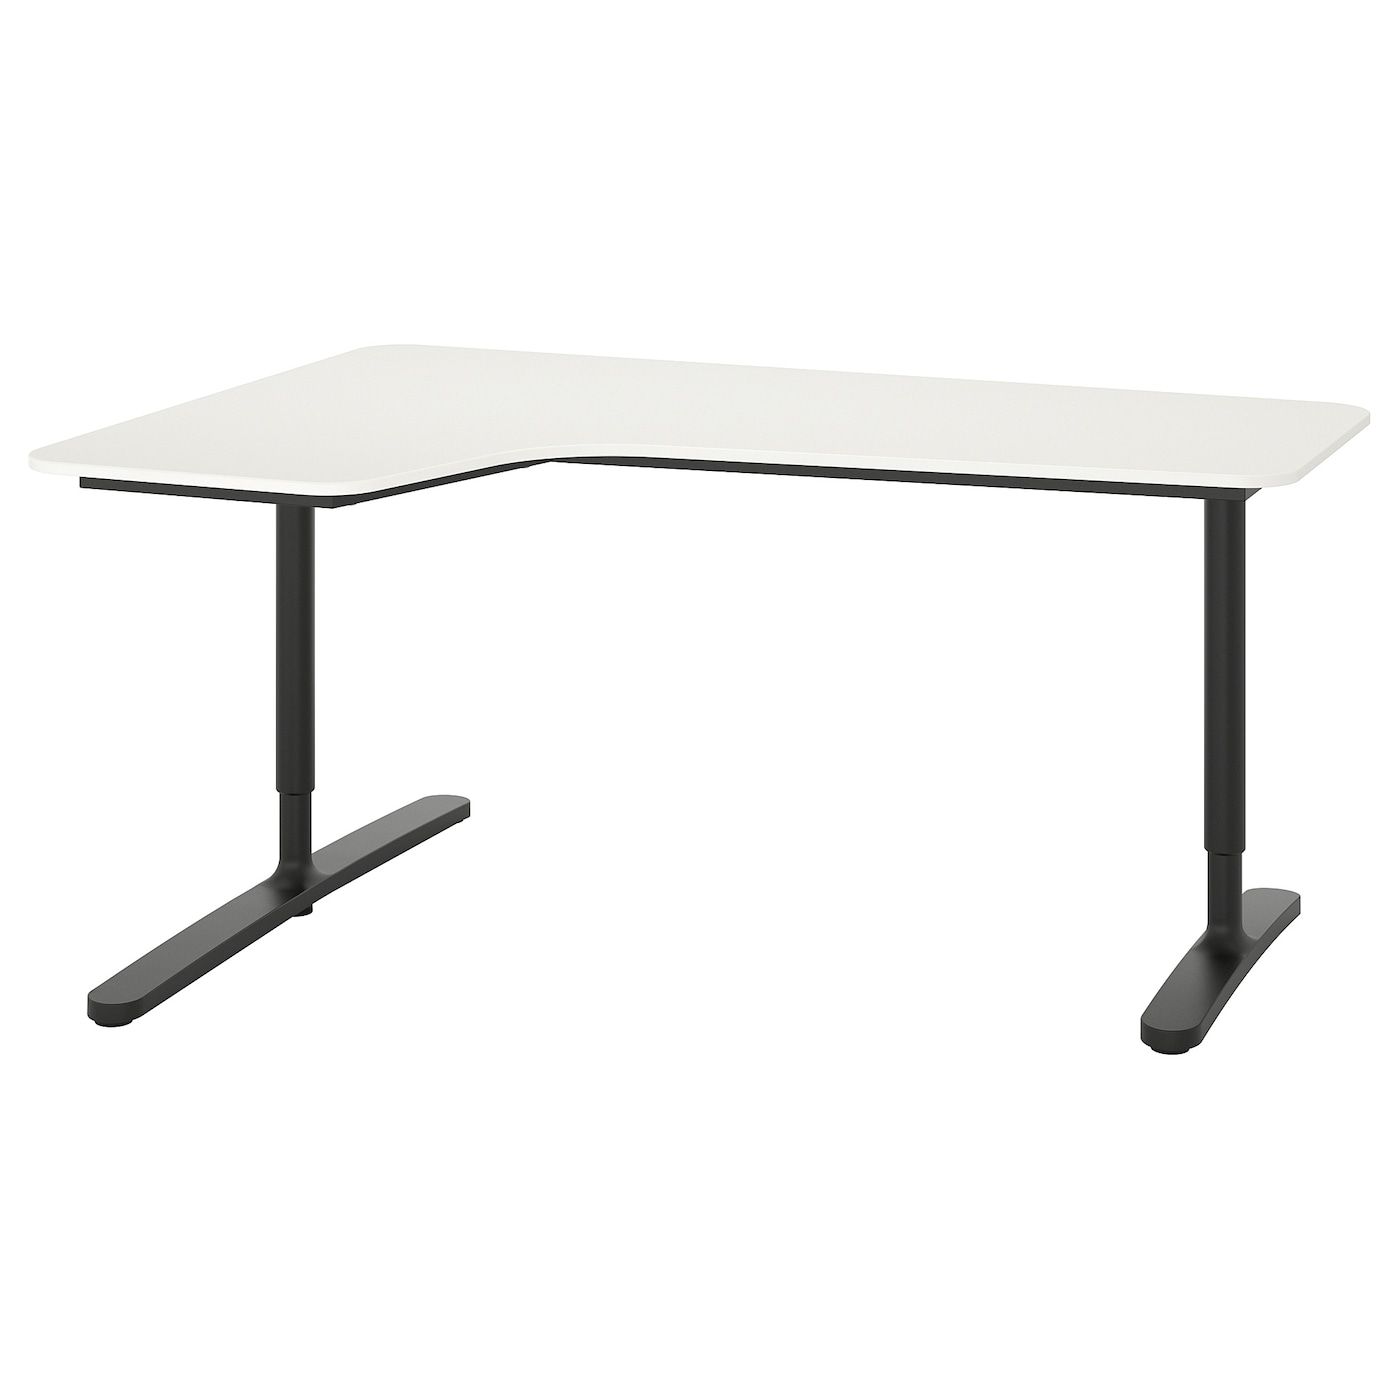 BEKANT Corner desk left - white, black 46x46 cm